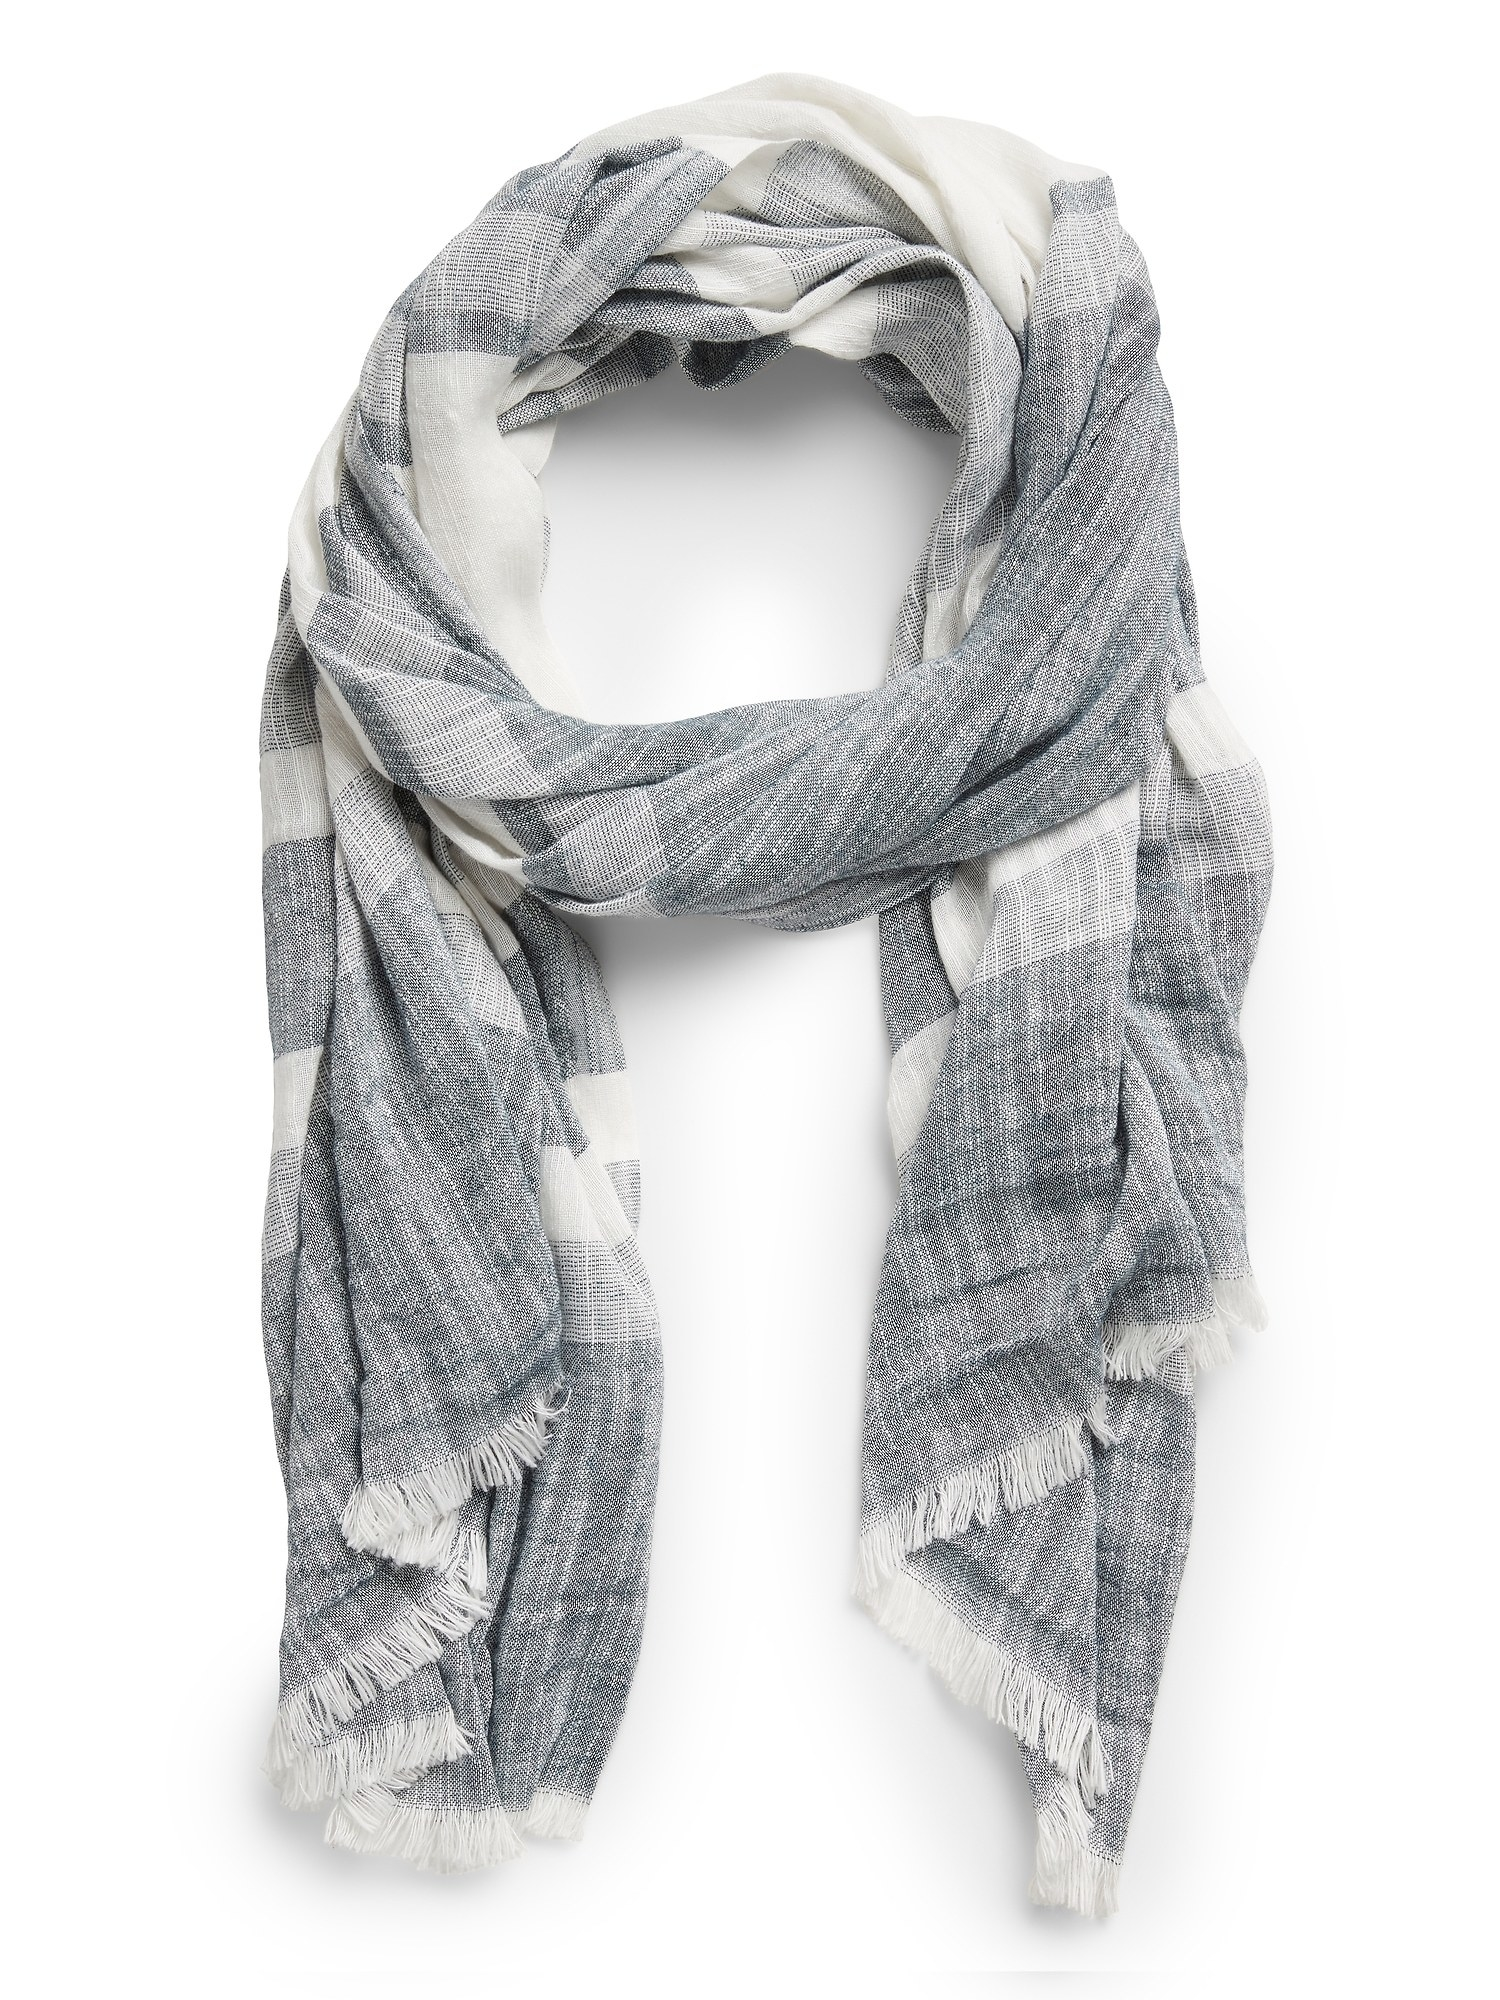 Product photo showing Banana Republic wide stripe scarf in blue shadow